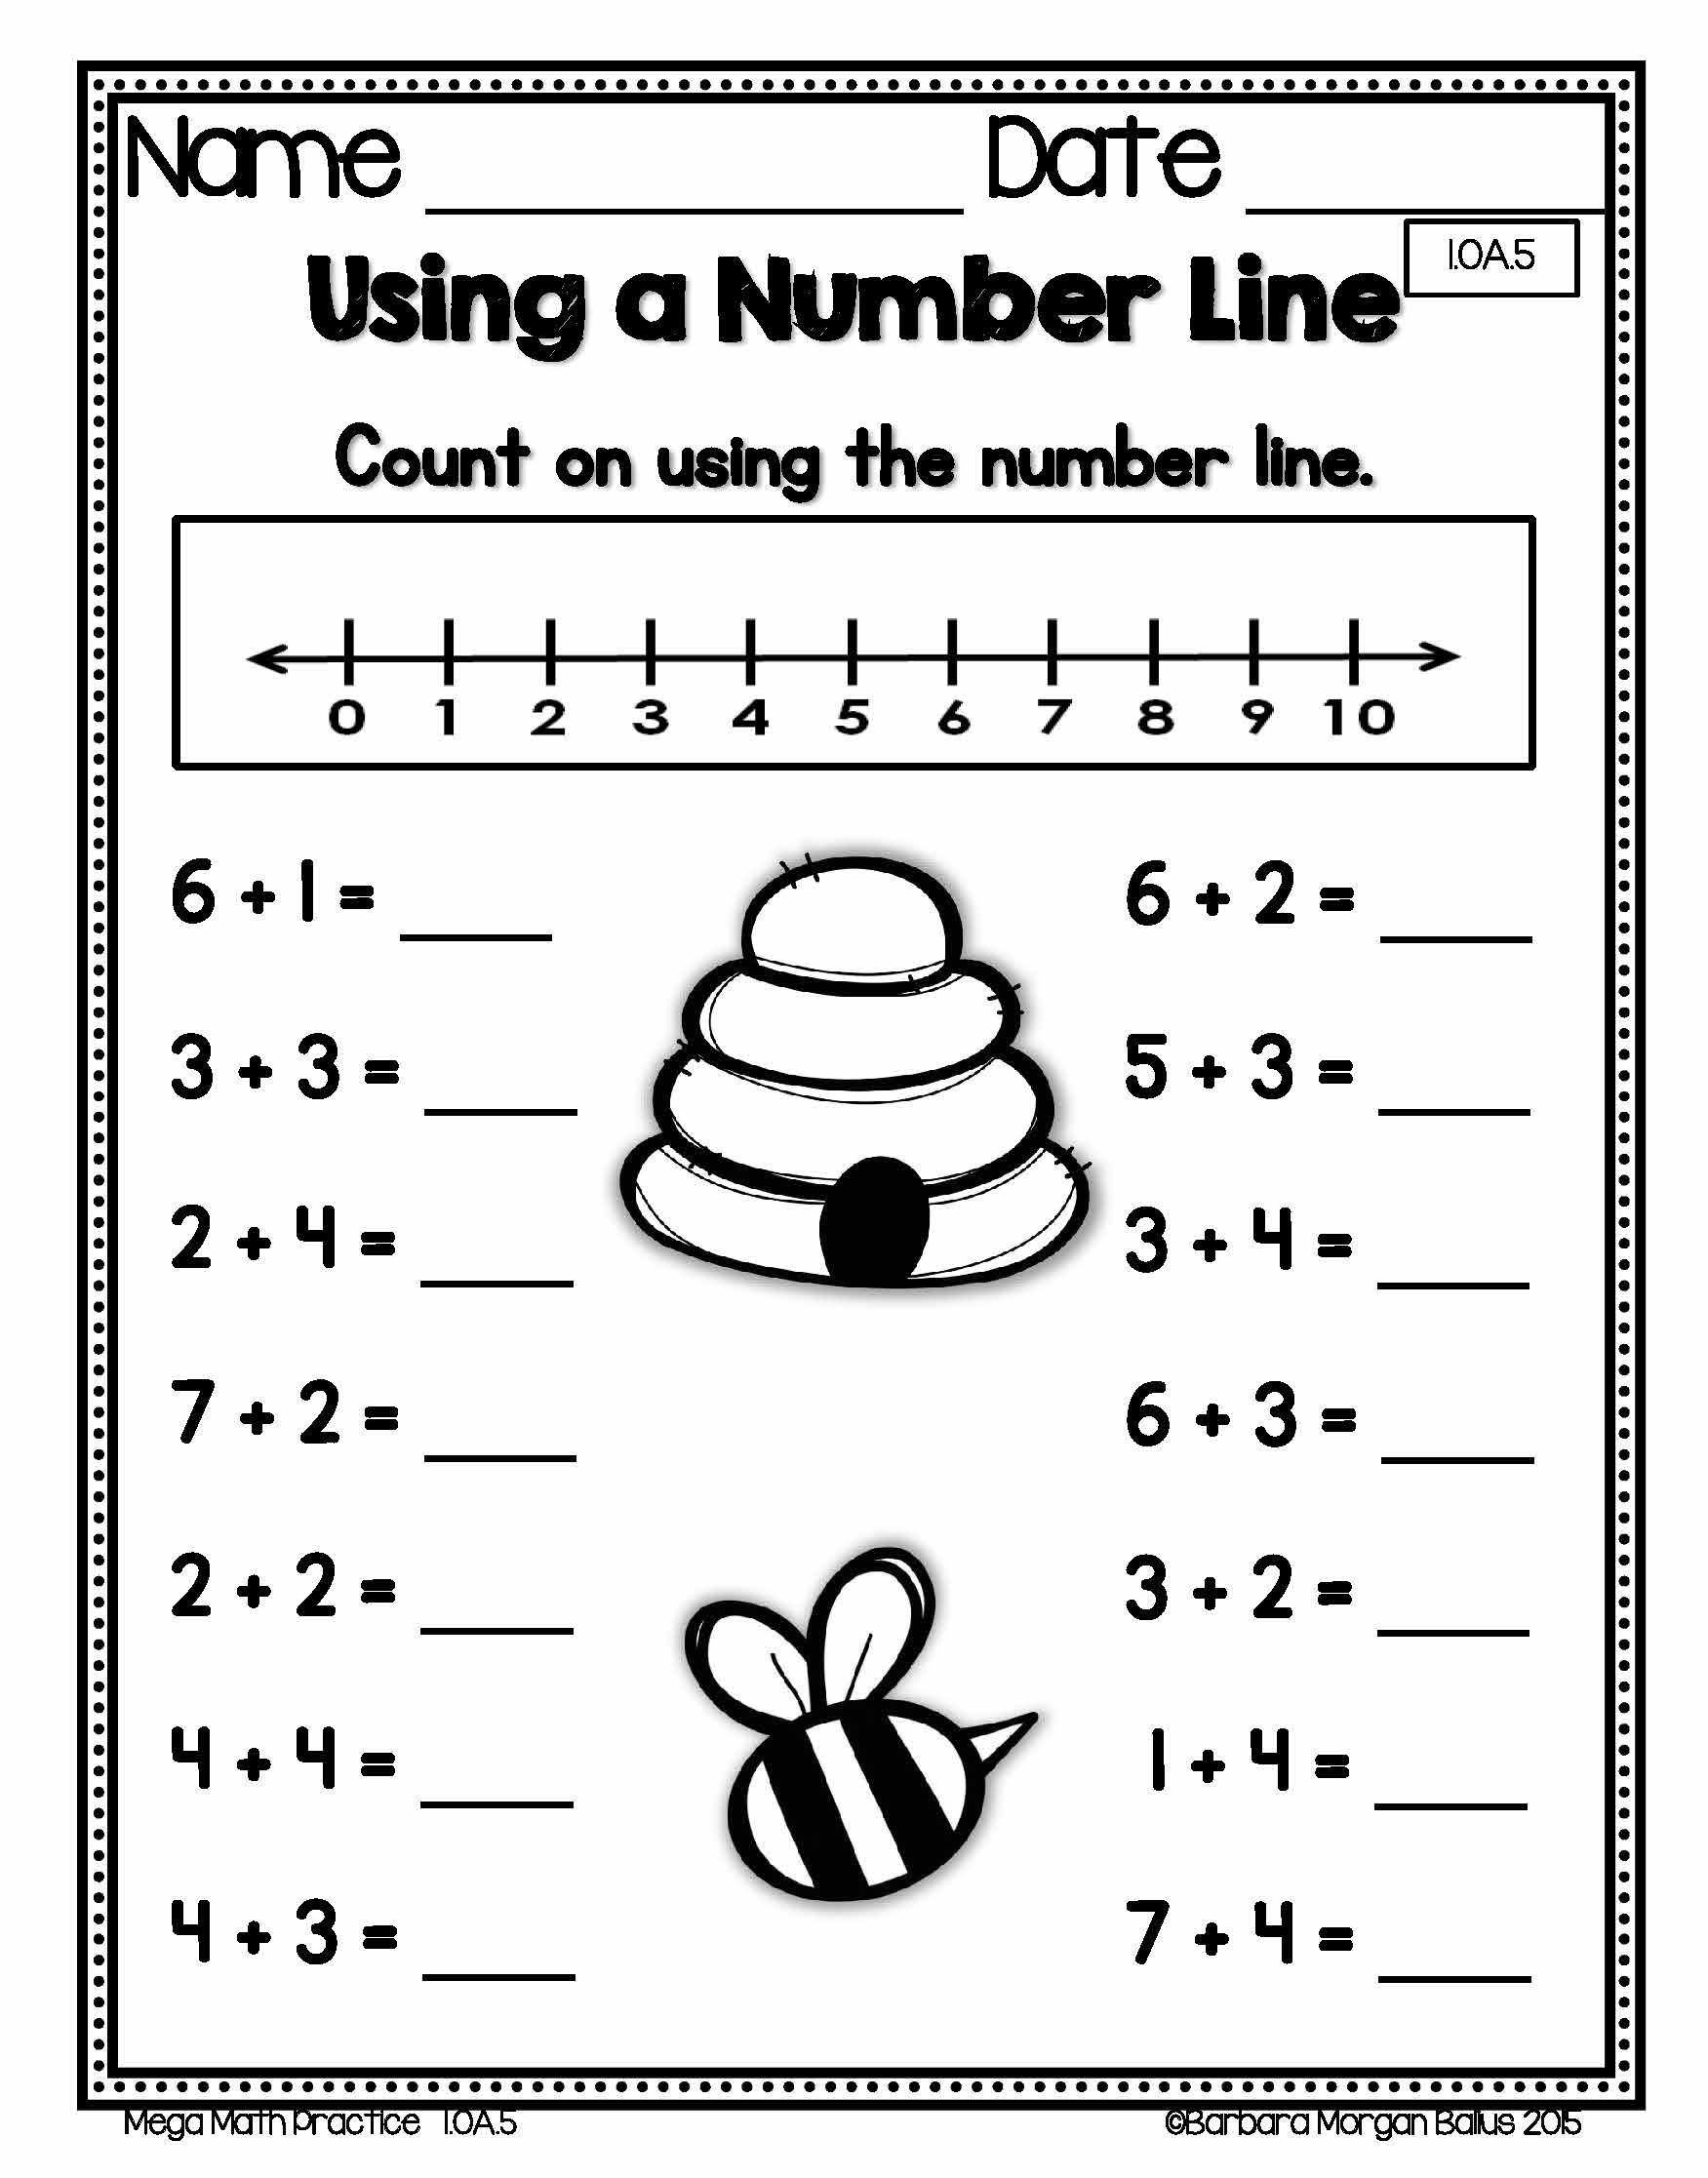 Worksheets Common Core Math Worksheets 1st Grade first grade math worksheets common core daily weeks 11 20